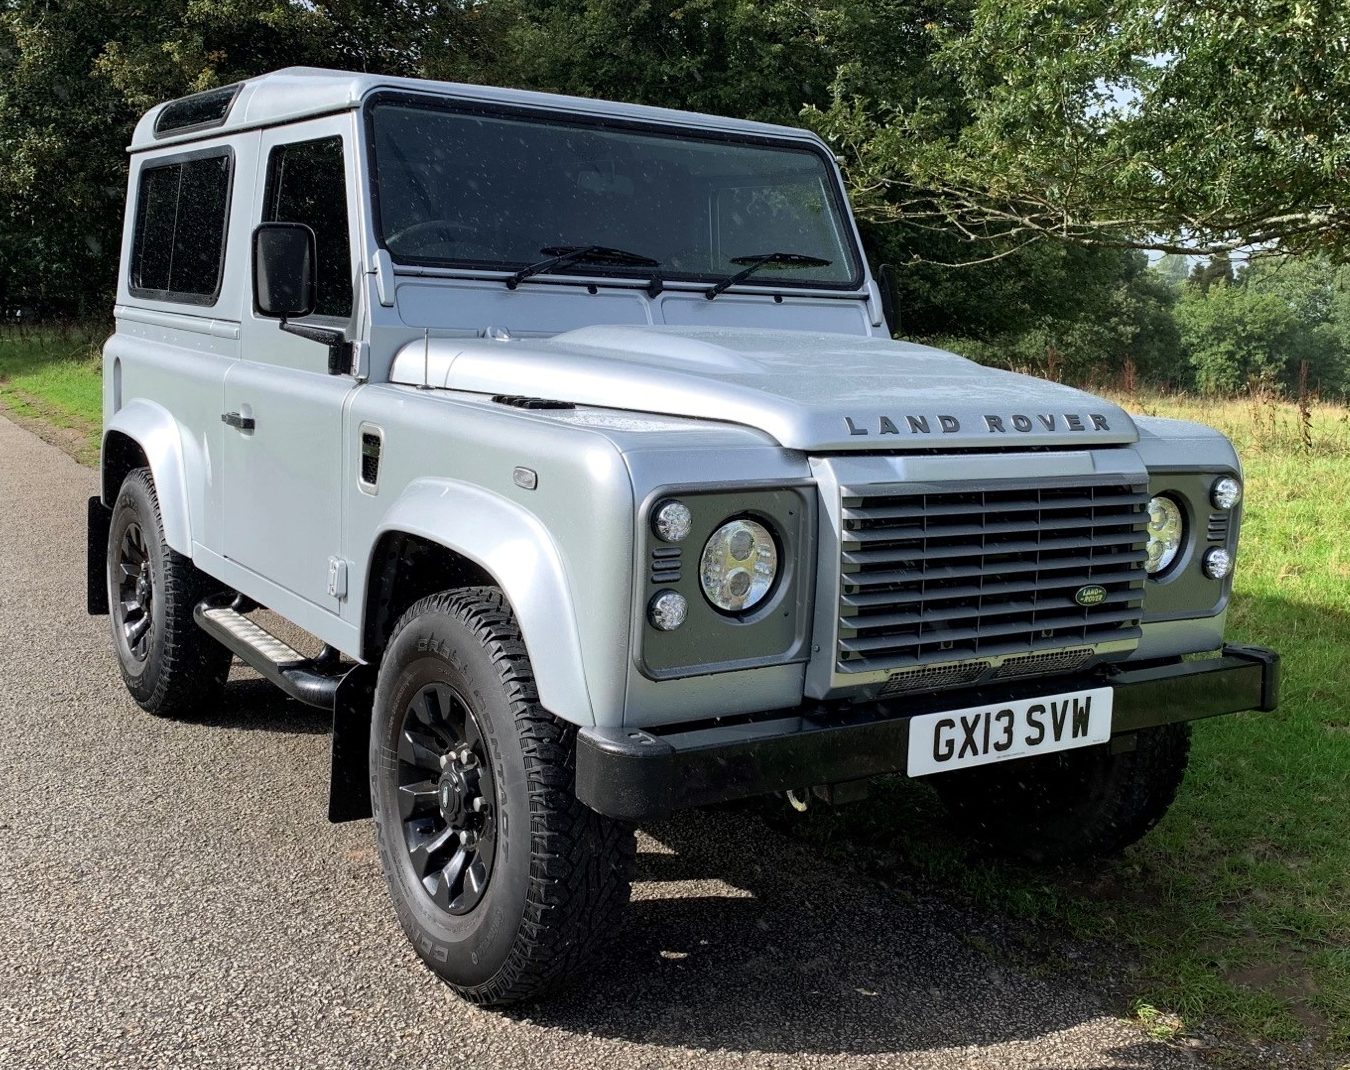 2013 Land Rover Defender 90 TD XS – 38,900 miles